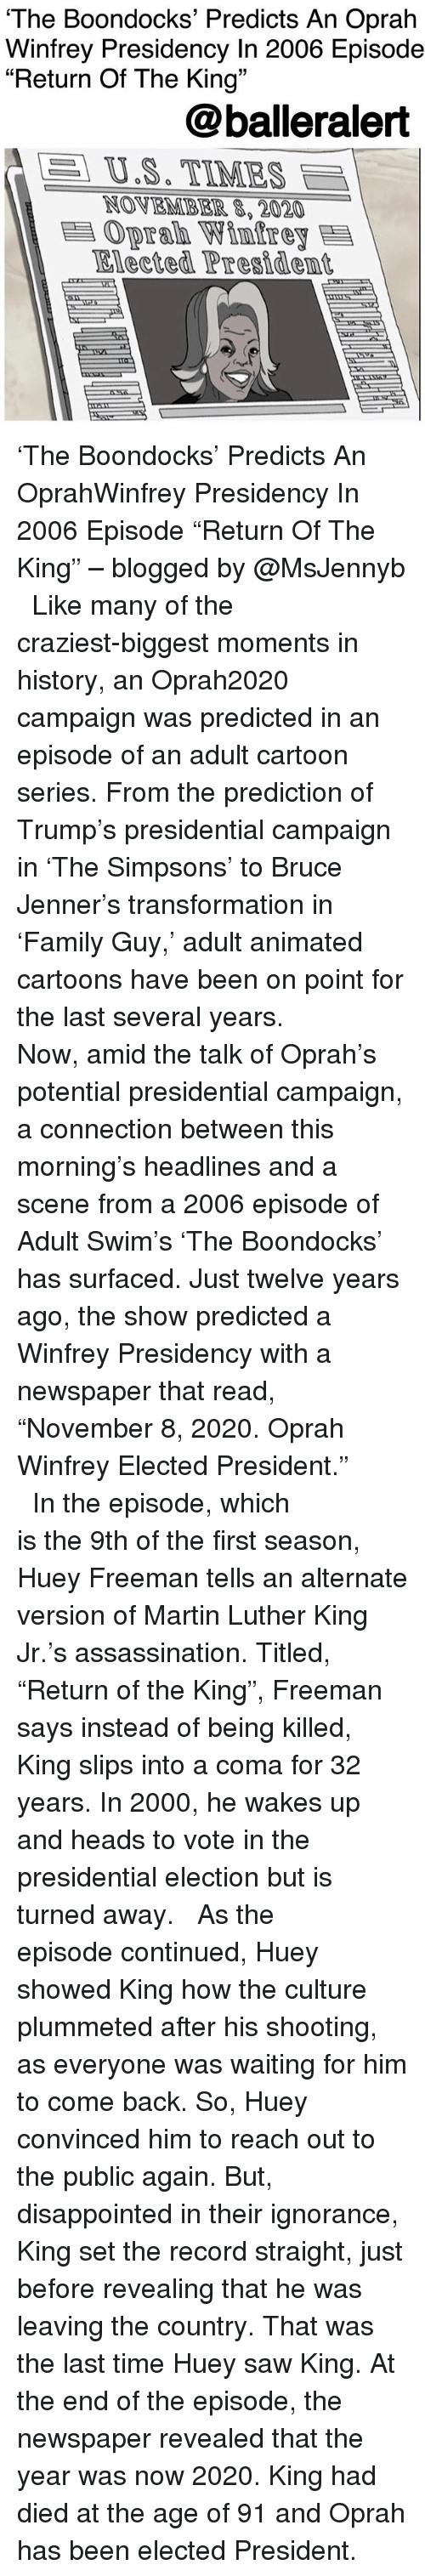 """Presidential election: The Boondocks' Predicts An Oprah  Winfrey Presidency In 2006 Episode  """"Return Of The King""""  13  @balleralert  A  US. TIMES  NOVEMBER 8,2020  Oprah Winfrey  Elected Presidem 'The Boondocks' Predicts An OprahWinfrey Presidency In 2006 Episode """"Return Of The King"""" – blogged by @MsJennyb ⠀⠀⠀⠀⠀⠀⠀ ⠀⠀⠀⠀⠀⠀⠀ Like many of the craziest-biggest moments in history, an Oprah2020 campaign was predicted in an episode of an adult cartoon series. From the prediction of Trump's presidential campaign in 'The Simpsons' to Bruce Jenner's transformation in 'Family Guy,' adult animated cartoons have been on point for the last several years. ⠀⠀⠀⠀⠀⠀⠀ ⠀⠀⠀⠀⠀⠀⠀ Now, amid the talk of Oprah's potential presidential campaign, a connection between this morning's headlines and a scene from a 2006 episode of Adult Swim's 'The Boondocks' has surfaced. Just twelve years ago, the show predicted a Winfrey Presidency with a newspaper that read, """"November 8, 2020. Oprah Winfrey Elected President."""" ⠀⠀⠀⠀⠀⠀⠀ ⠀⠀⠀⠀⠀⠀⠀ In the episode, which is the 9th of the first season, Huey Freeman tells an alternate version of Martin Luther King Jr.'s assassination. Titled, """"Return of the King"""", Freeman says instead of being killed, King slips into a coma for 32 years. In 2000, he wakes up and heads to vote in the presidential election but is turned away. ⠀⠀⠀⠀⠀⠀⠀ ⠀⠀⠀⠀⠀⠀⠀ As the episode continued, Huey showed King how the culture plummeted after his shooting, as everyone was waiting for him to come back. So, Huey convinced him to reach out to the public again. But, disappointed in their ignorance, King set the record straight, just before revealing that he was leaving the country. That was the last time Huey saw King. At the end of the episode, the newspaper revealed that the year was now 2020. King had died at the age of 91 and Oprah has been elected President."""